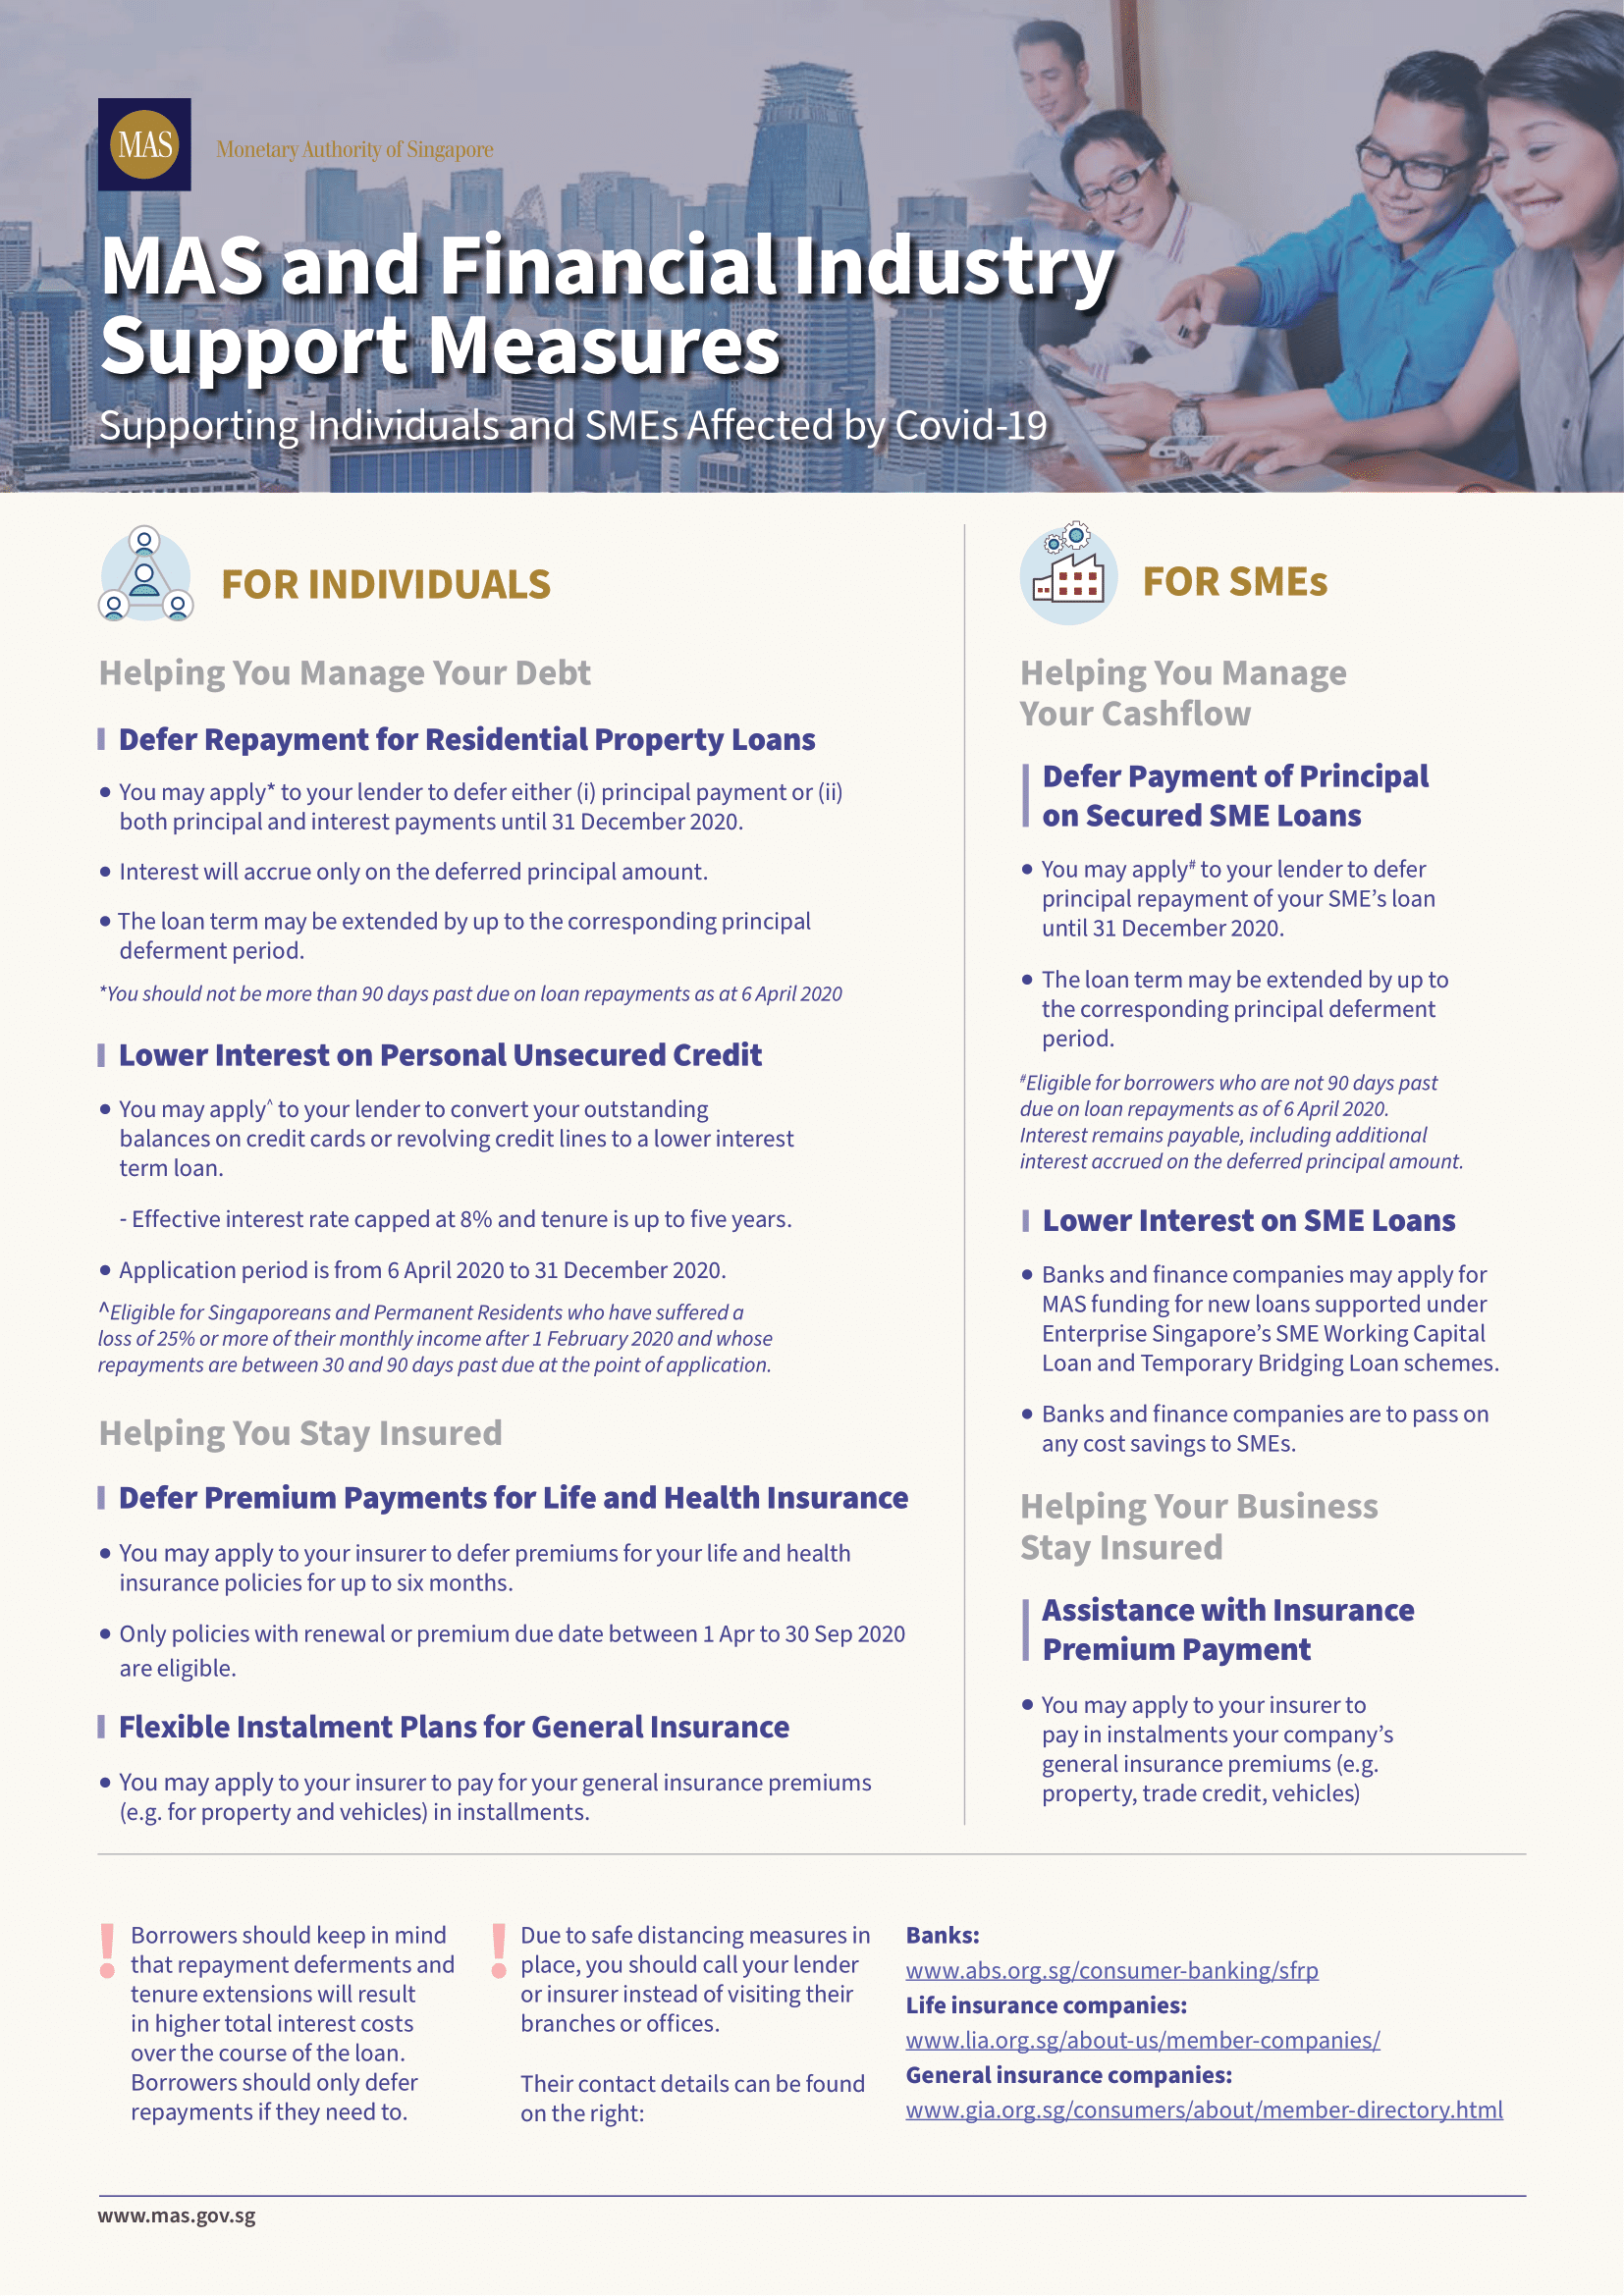 MAS COVID-19 Support Measures Infographic